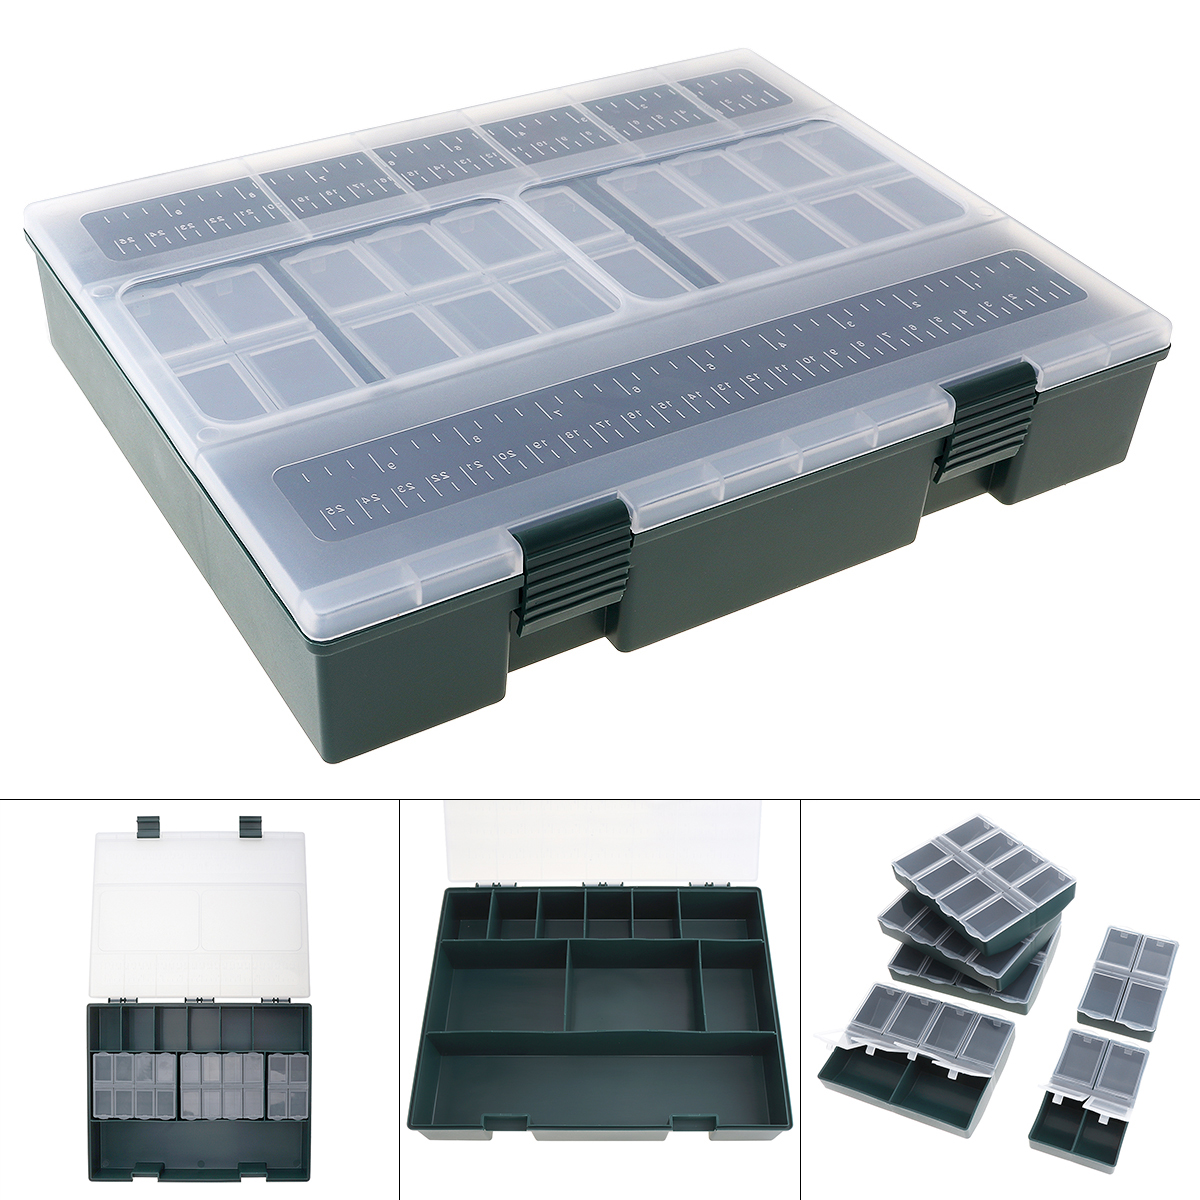 Hot Large Capacity Carp Fishing Tackle Box With Ruler Built-in 6 Separate Small Boxes Ideal For Athletics Leisure Carp Fishing